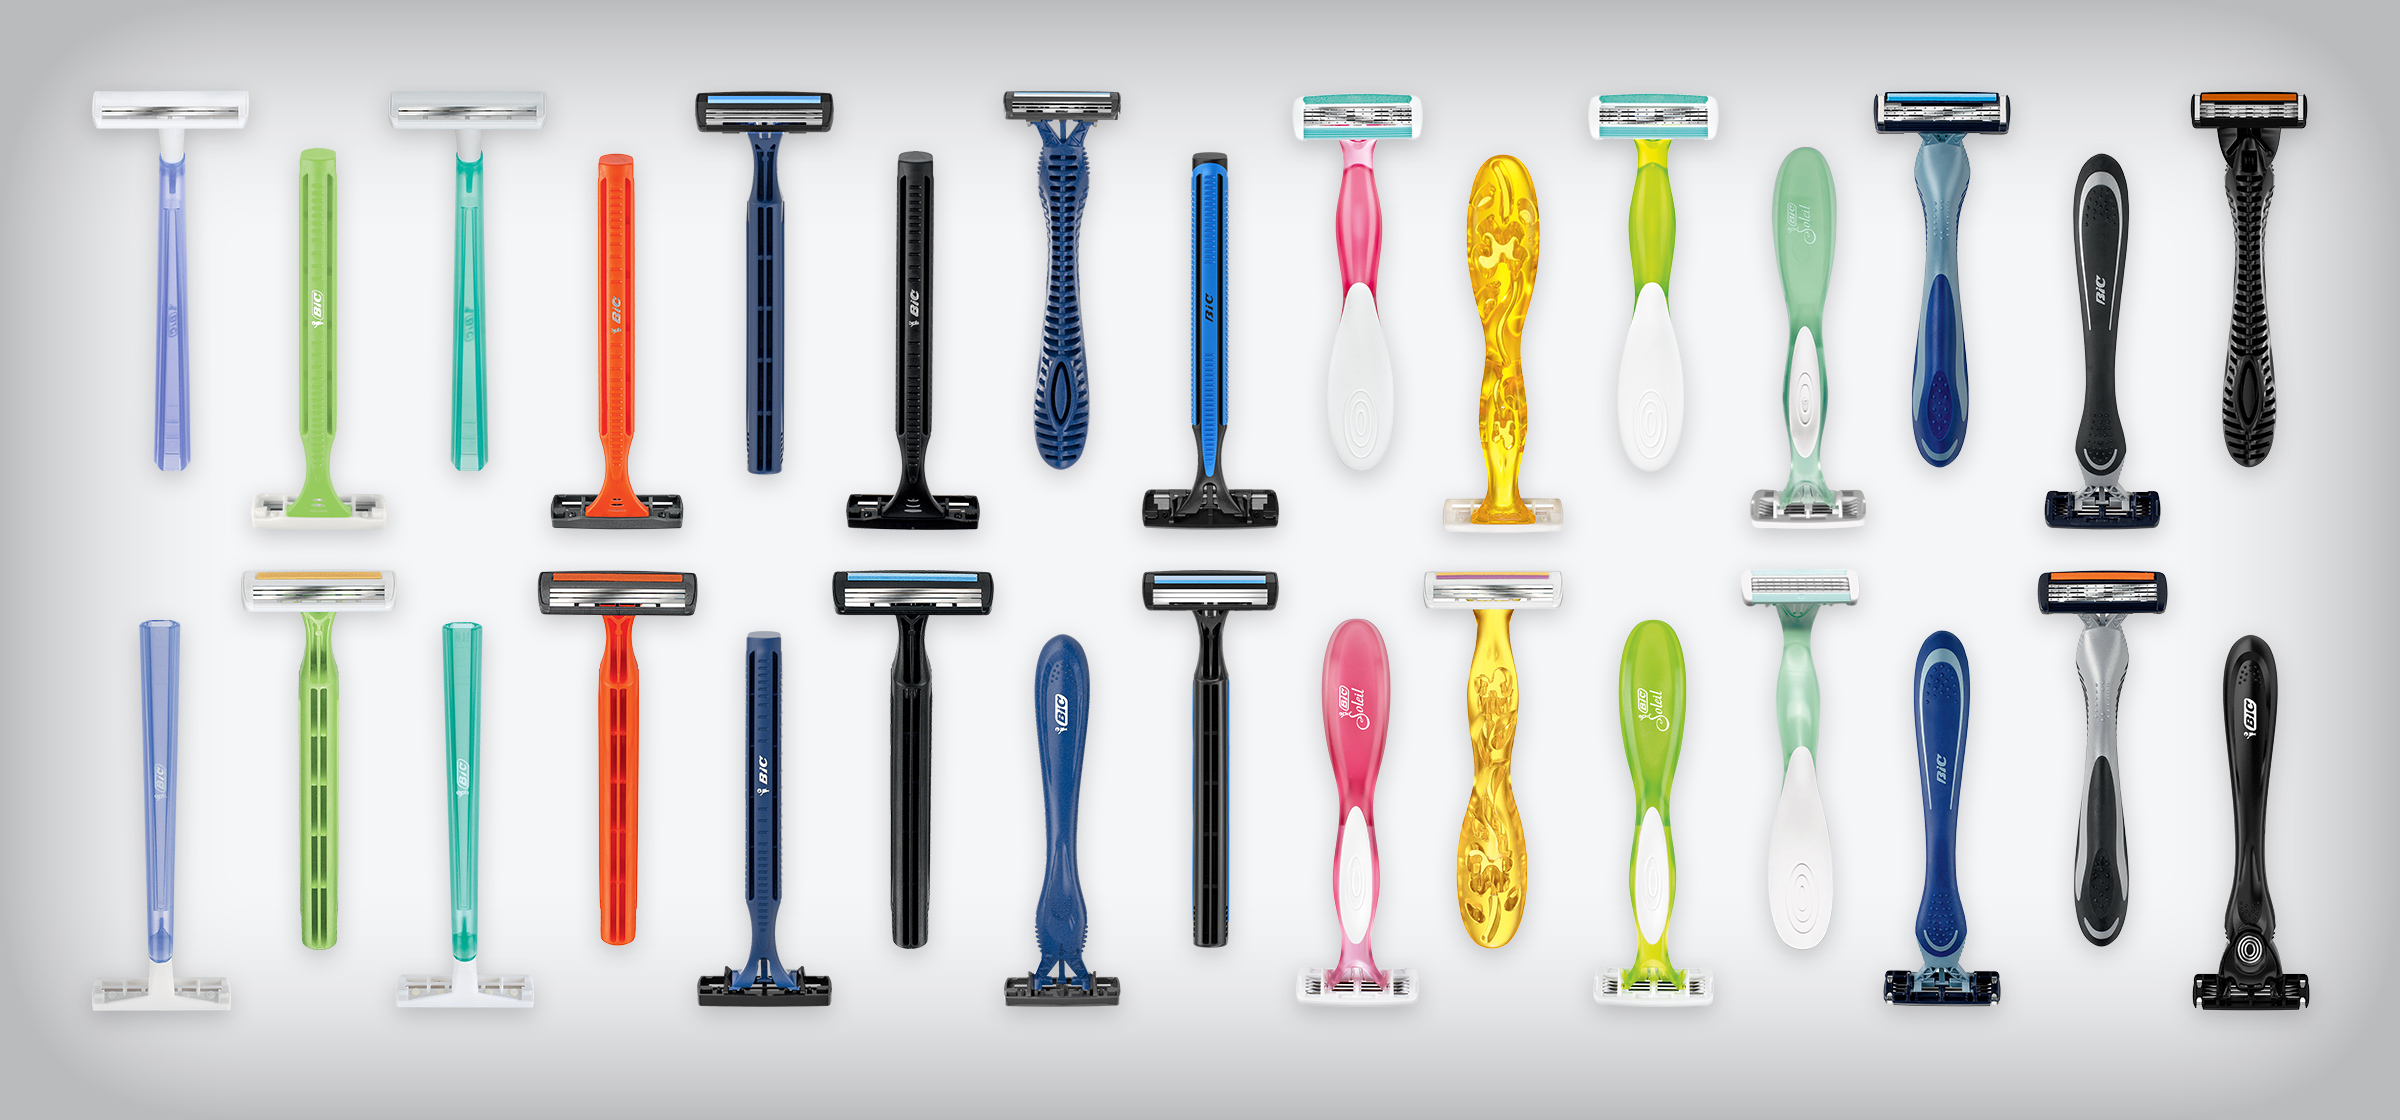 BIC razors for men and women